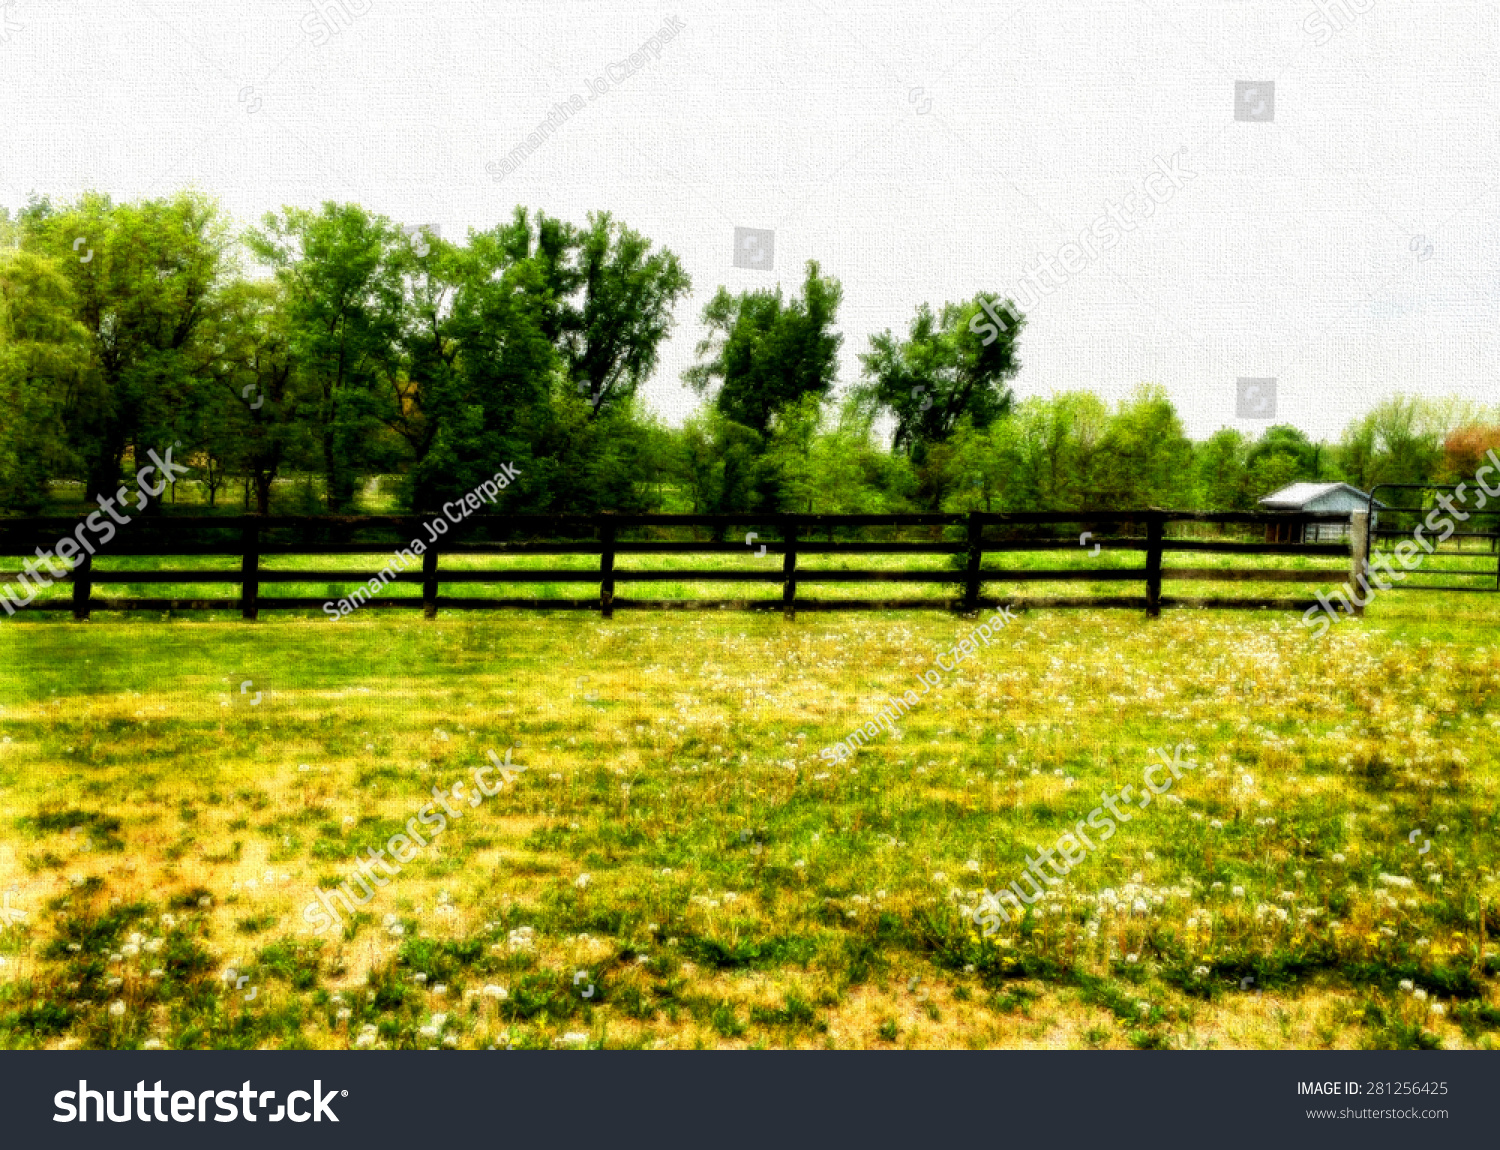 Fence On Horse Farm Scene Textured Stock Illustration 281256425